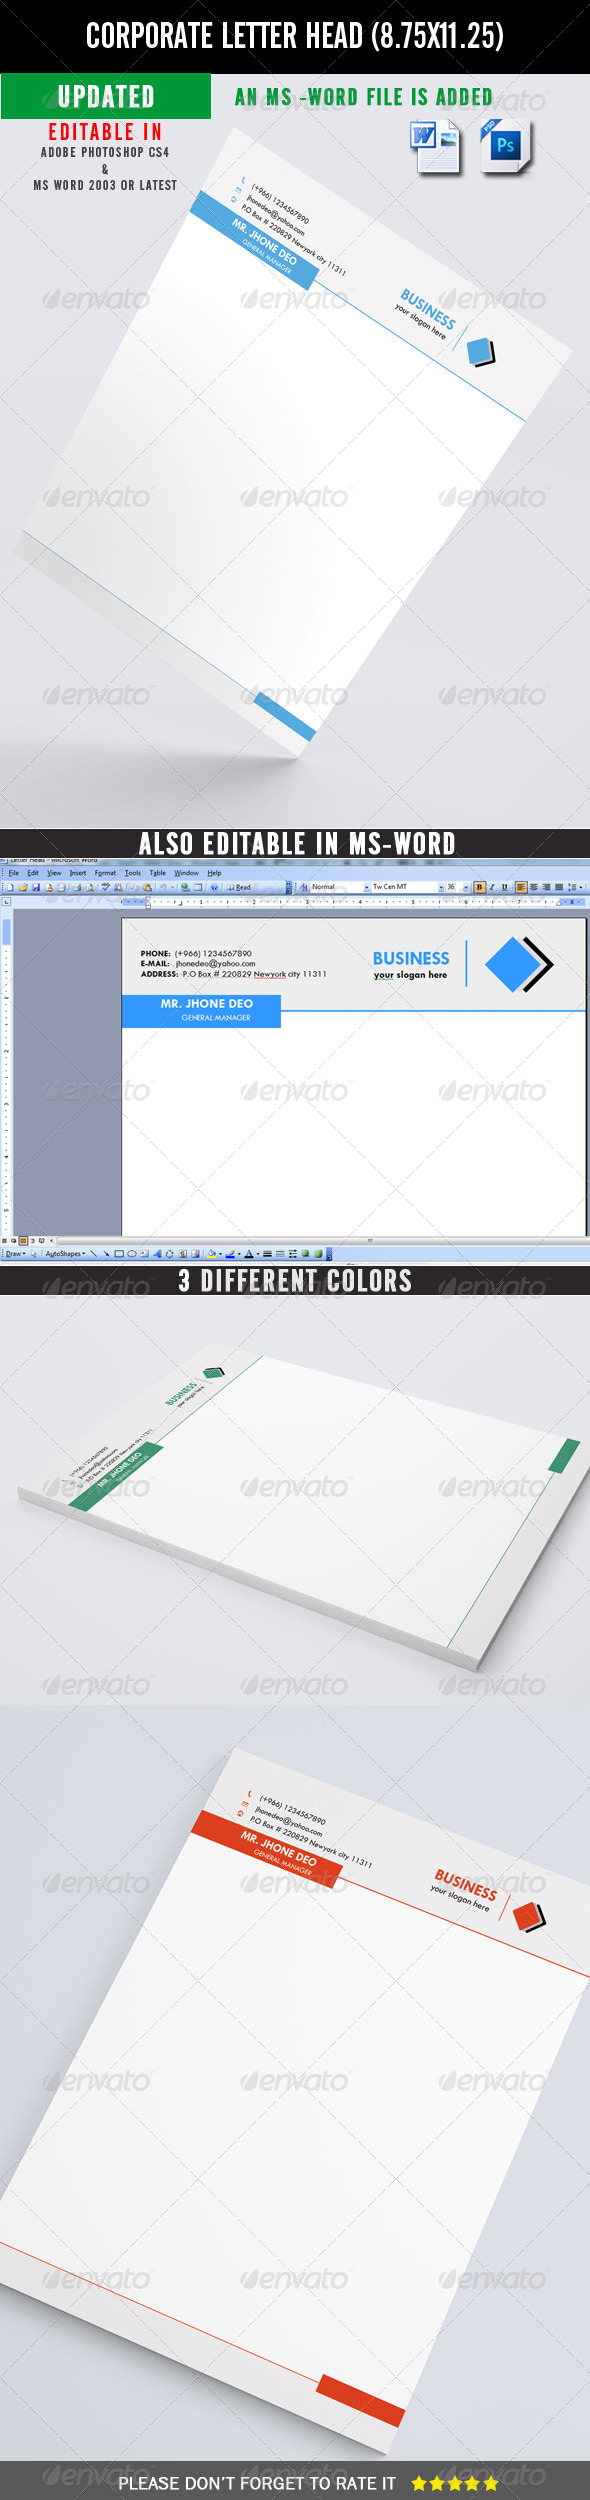 Corporate Letter Head (UPDATED) - Stationery Print Templates